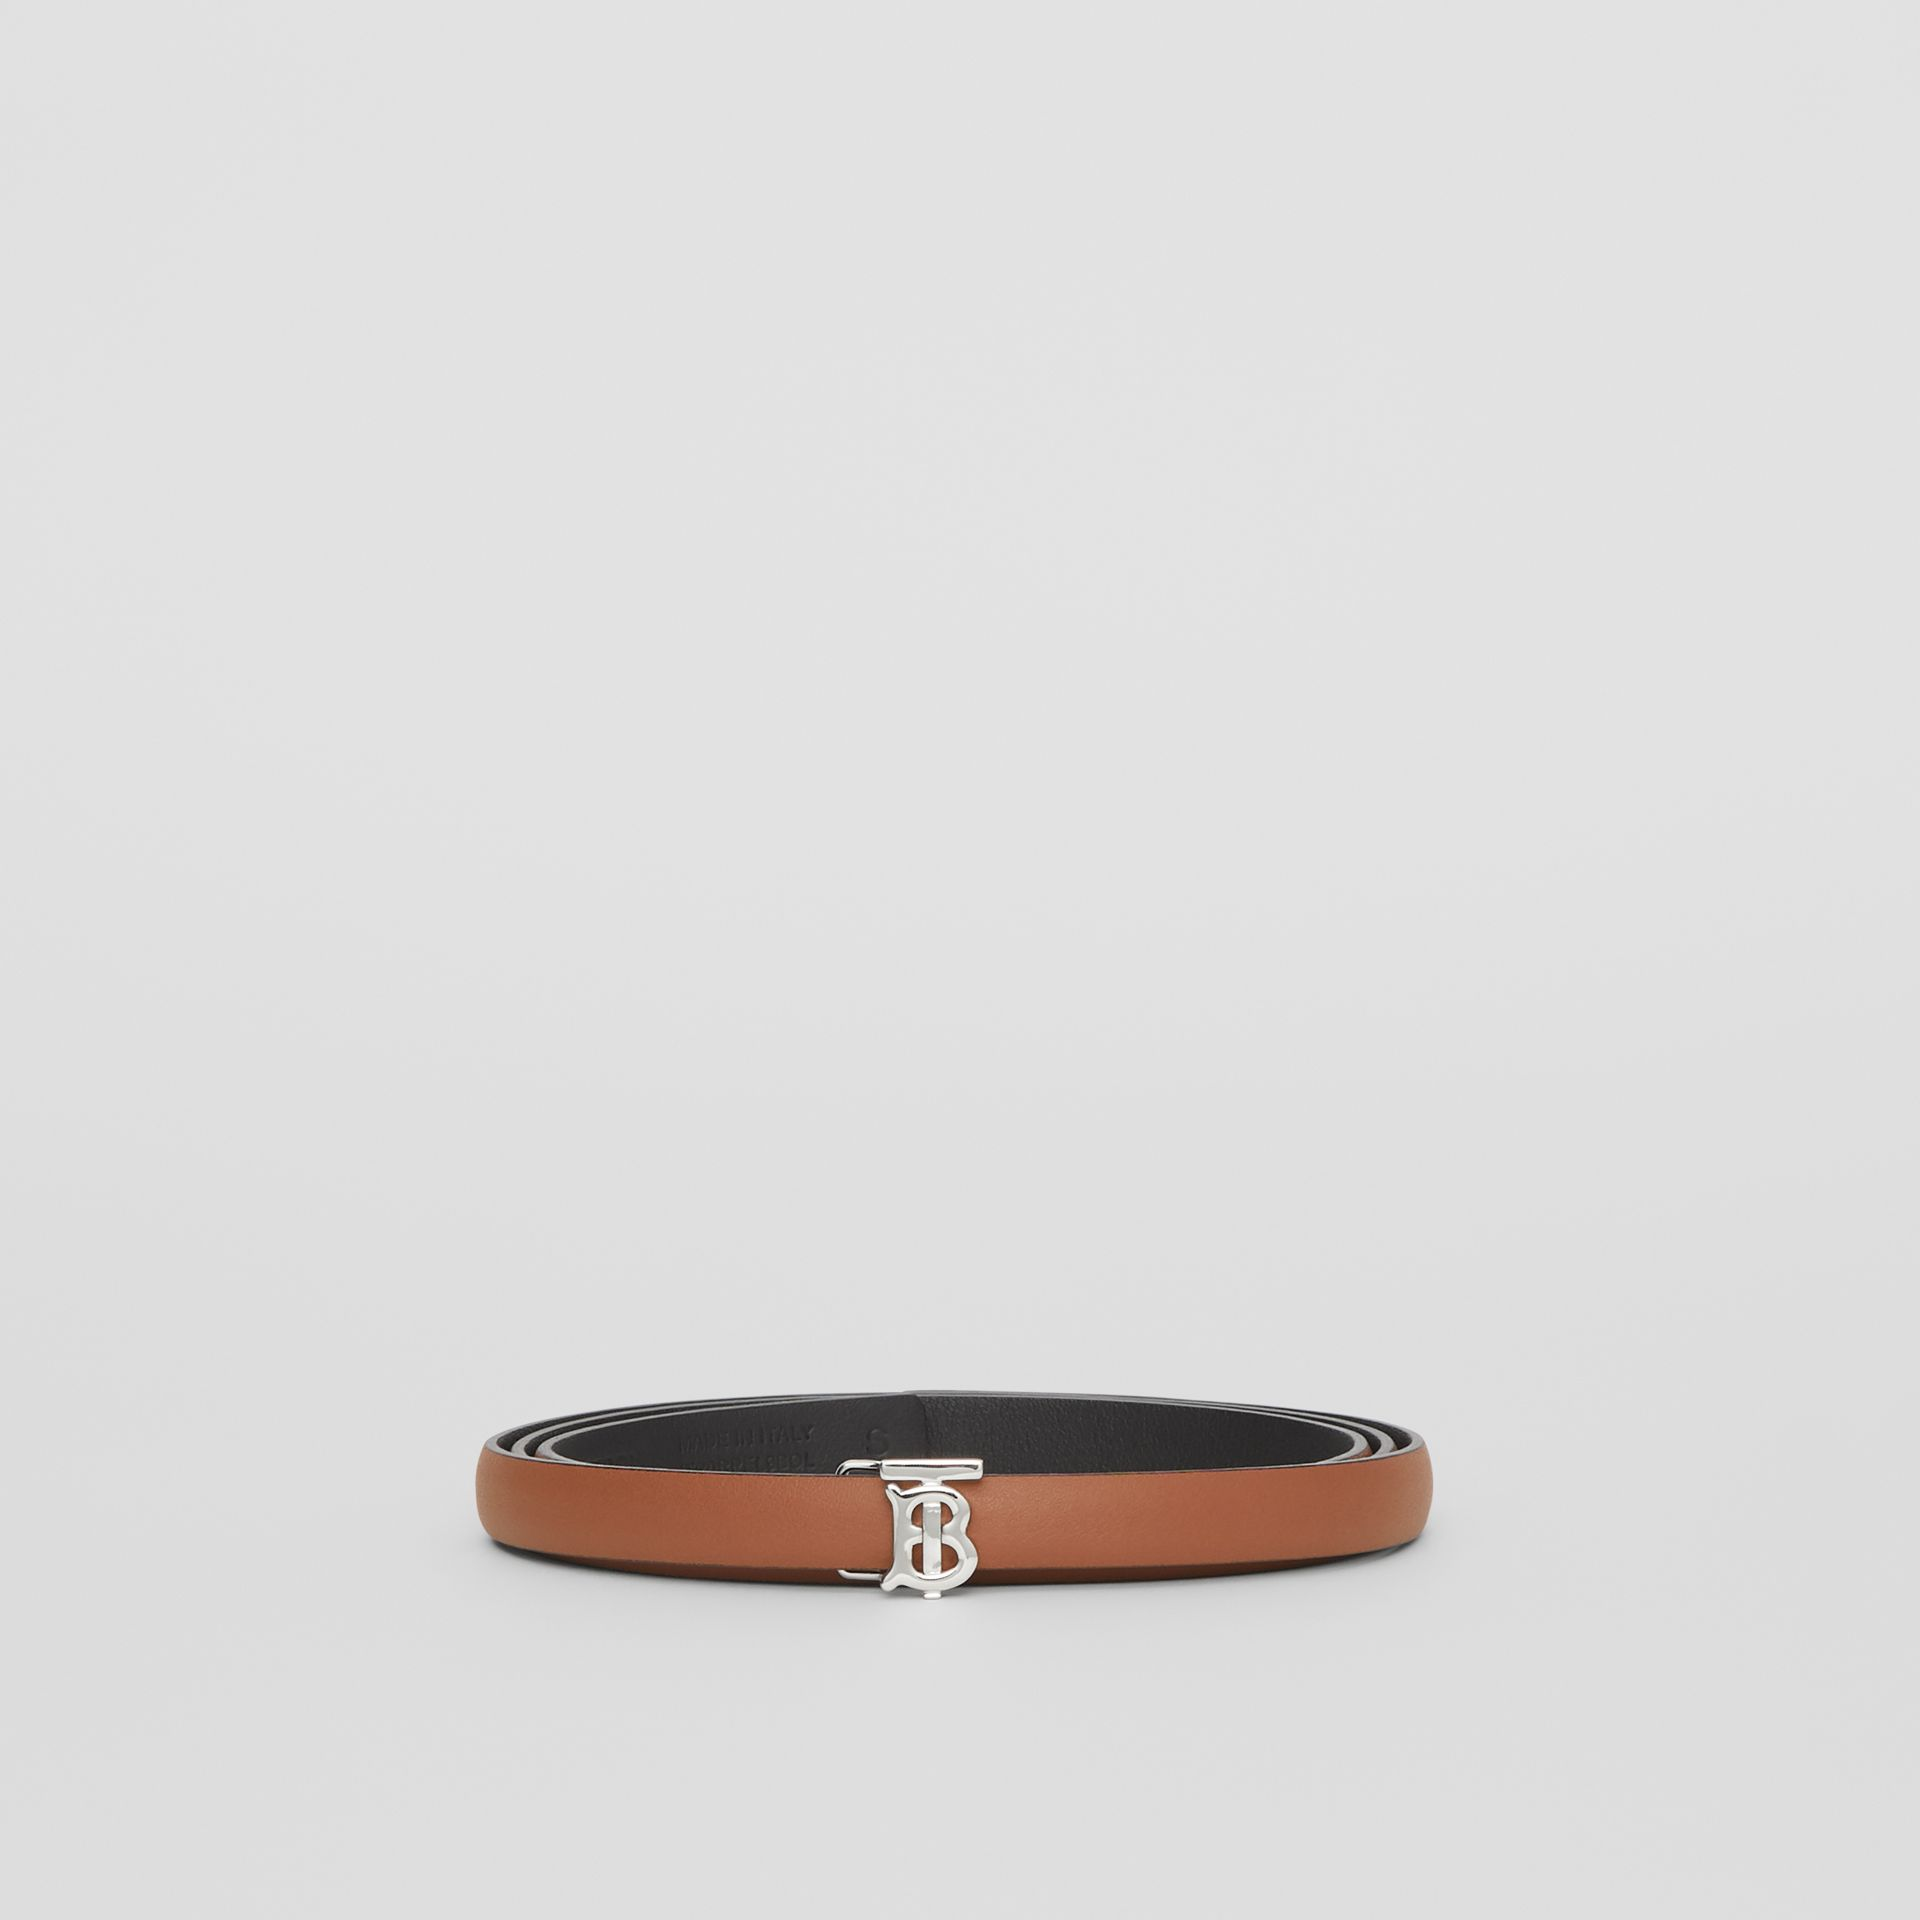 Reversible Monogram Motif Leather Wrap Belt in Malt Brown/black - Women | Burberry - gallery image 3